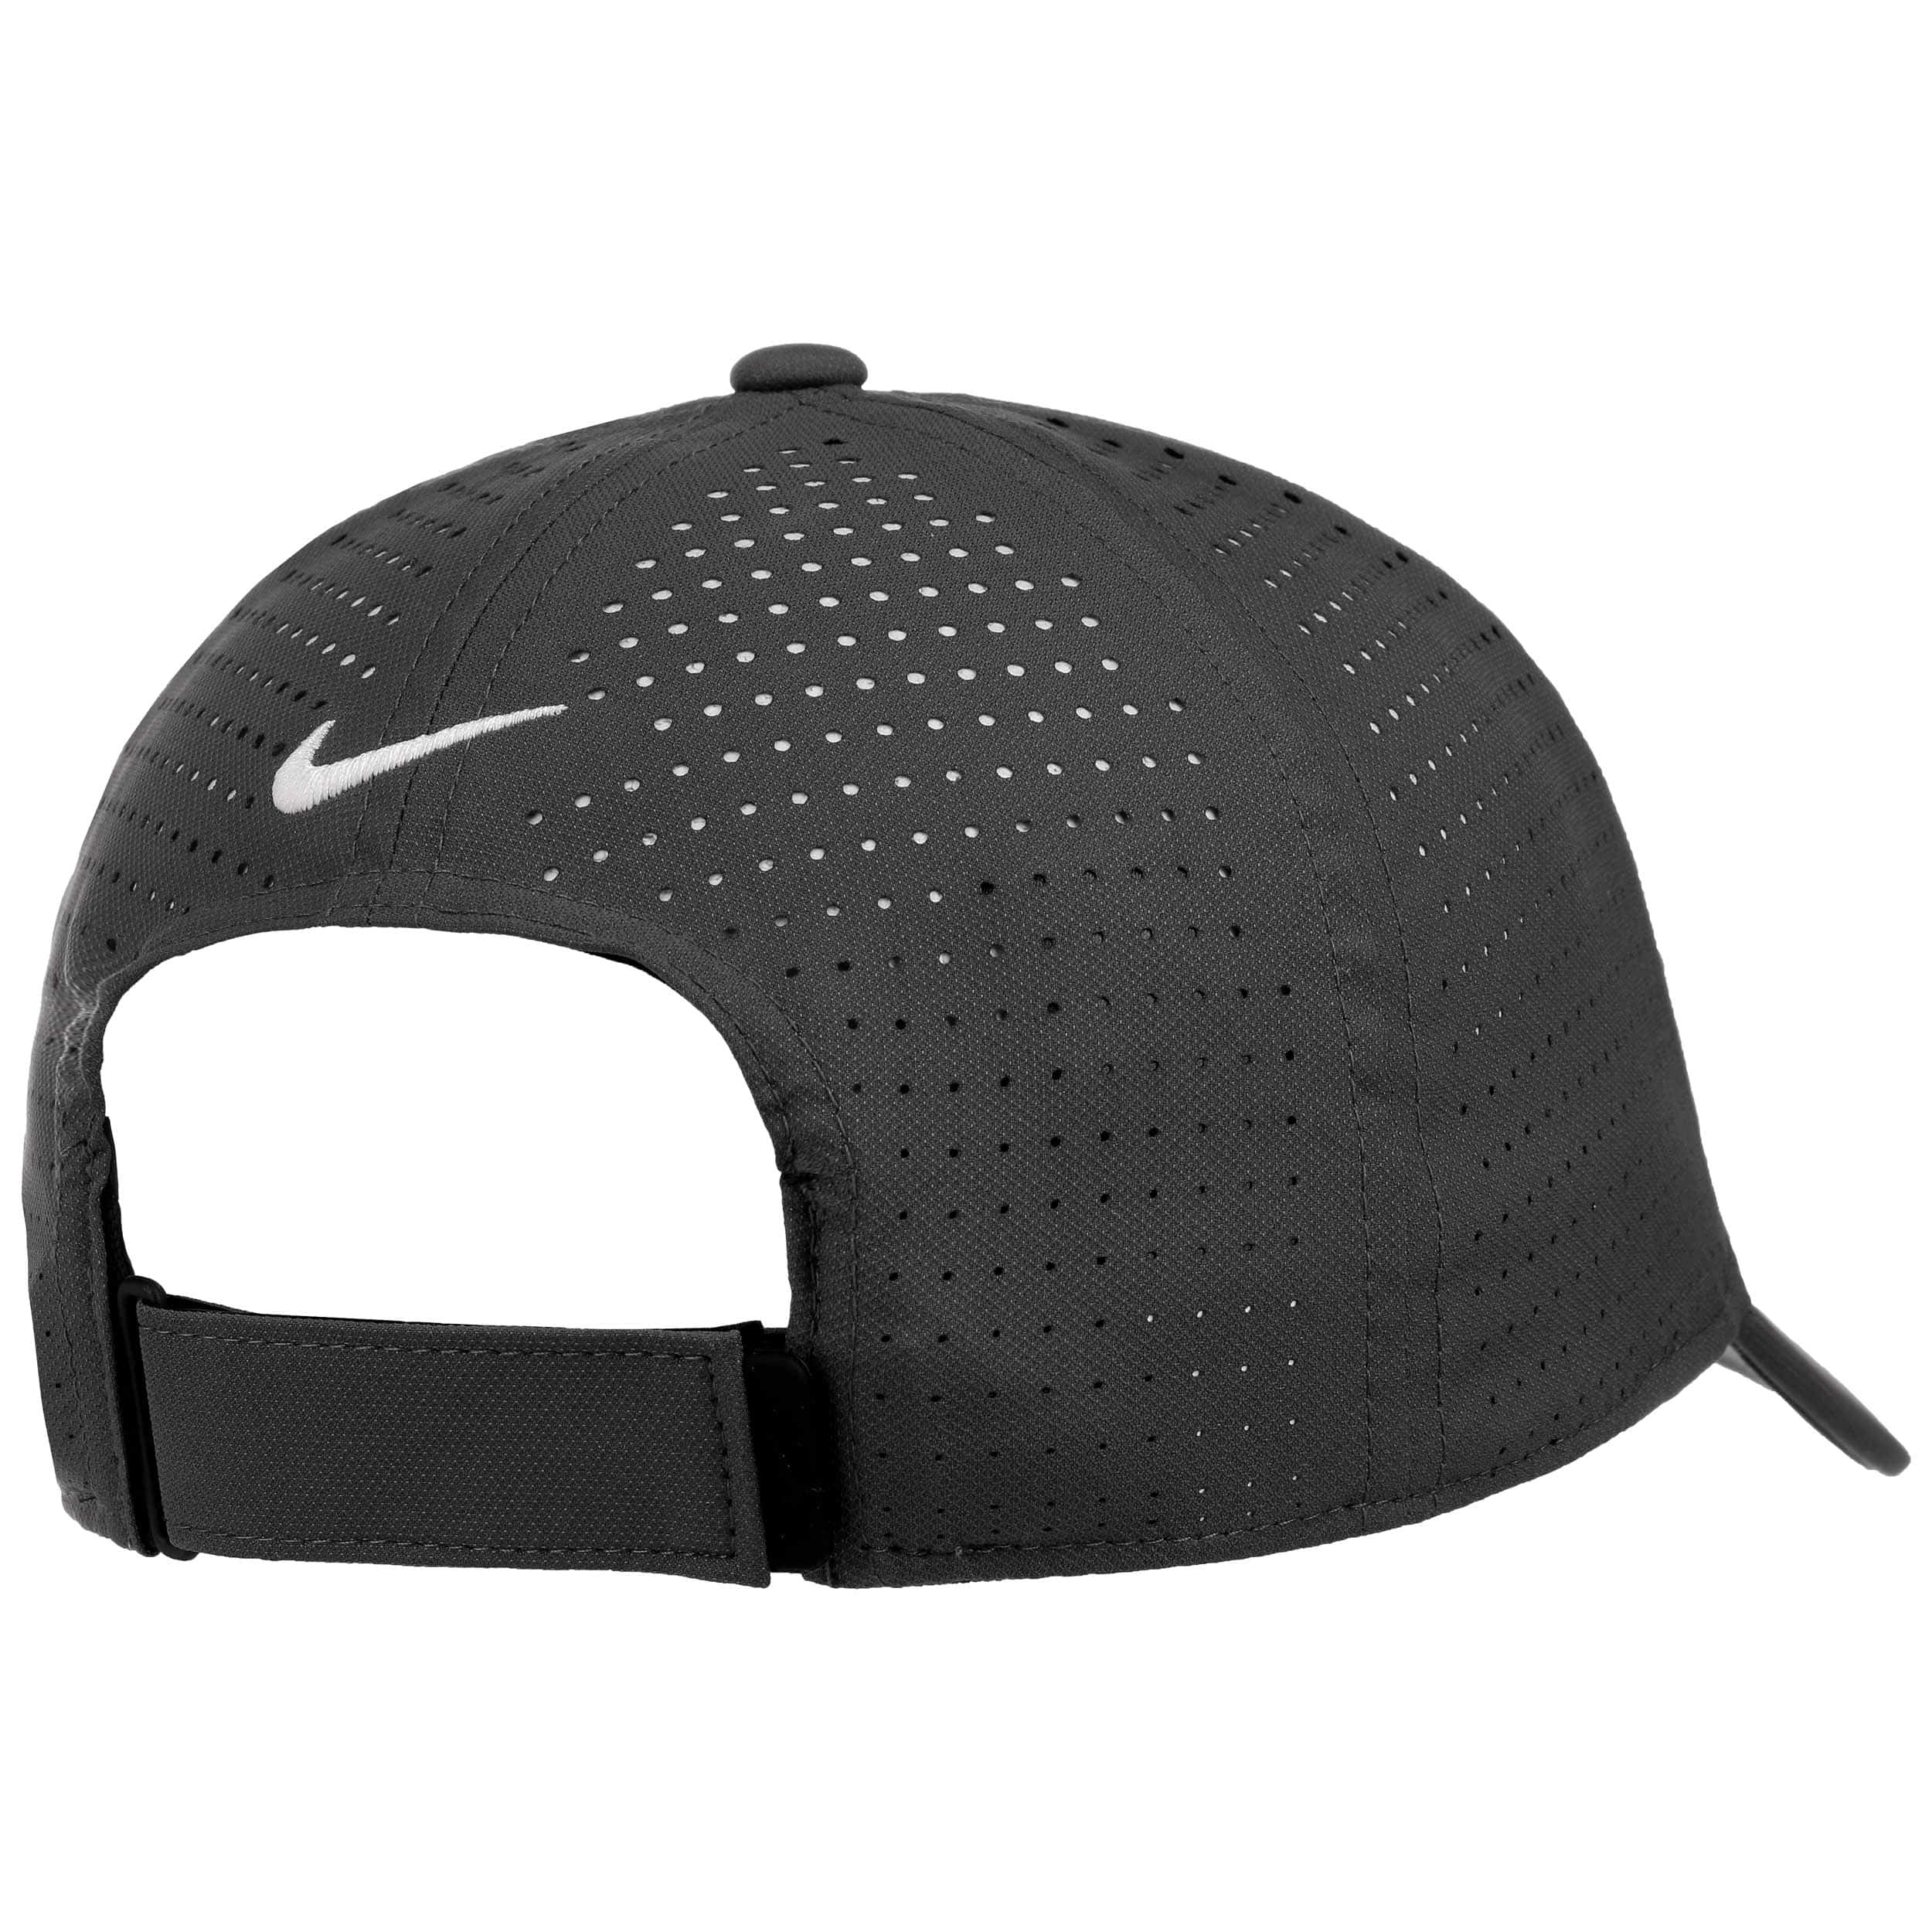 ... gris claro 3 · Gorra Legacy 91 Perf Strapback by Nike - negro 3 ... 7650b304c2d